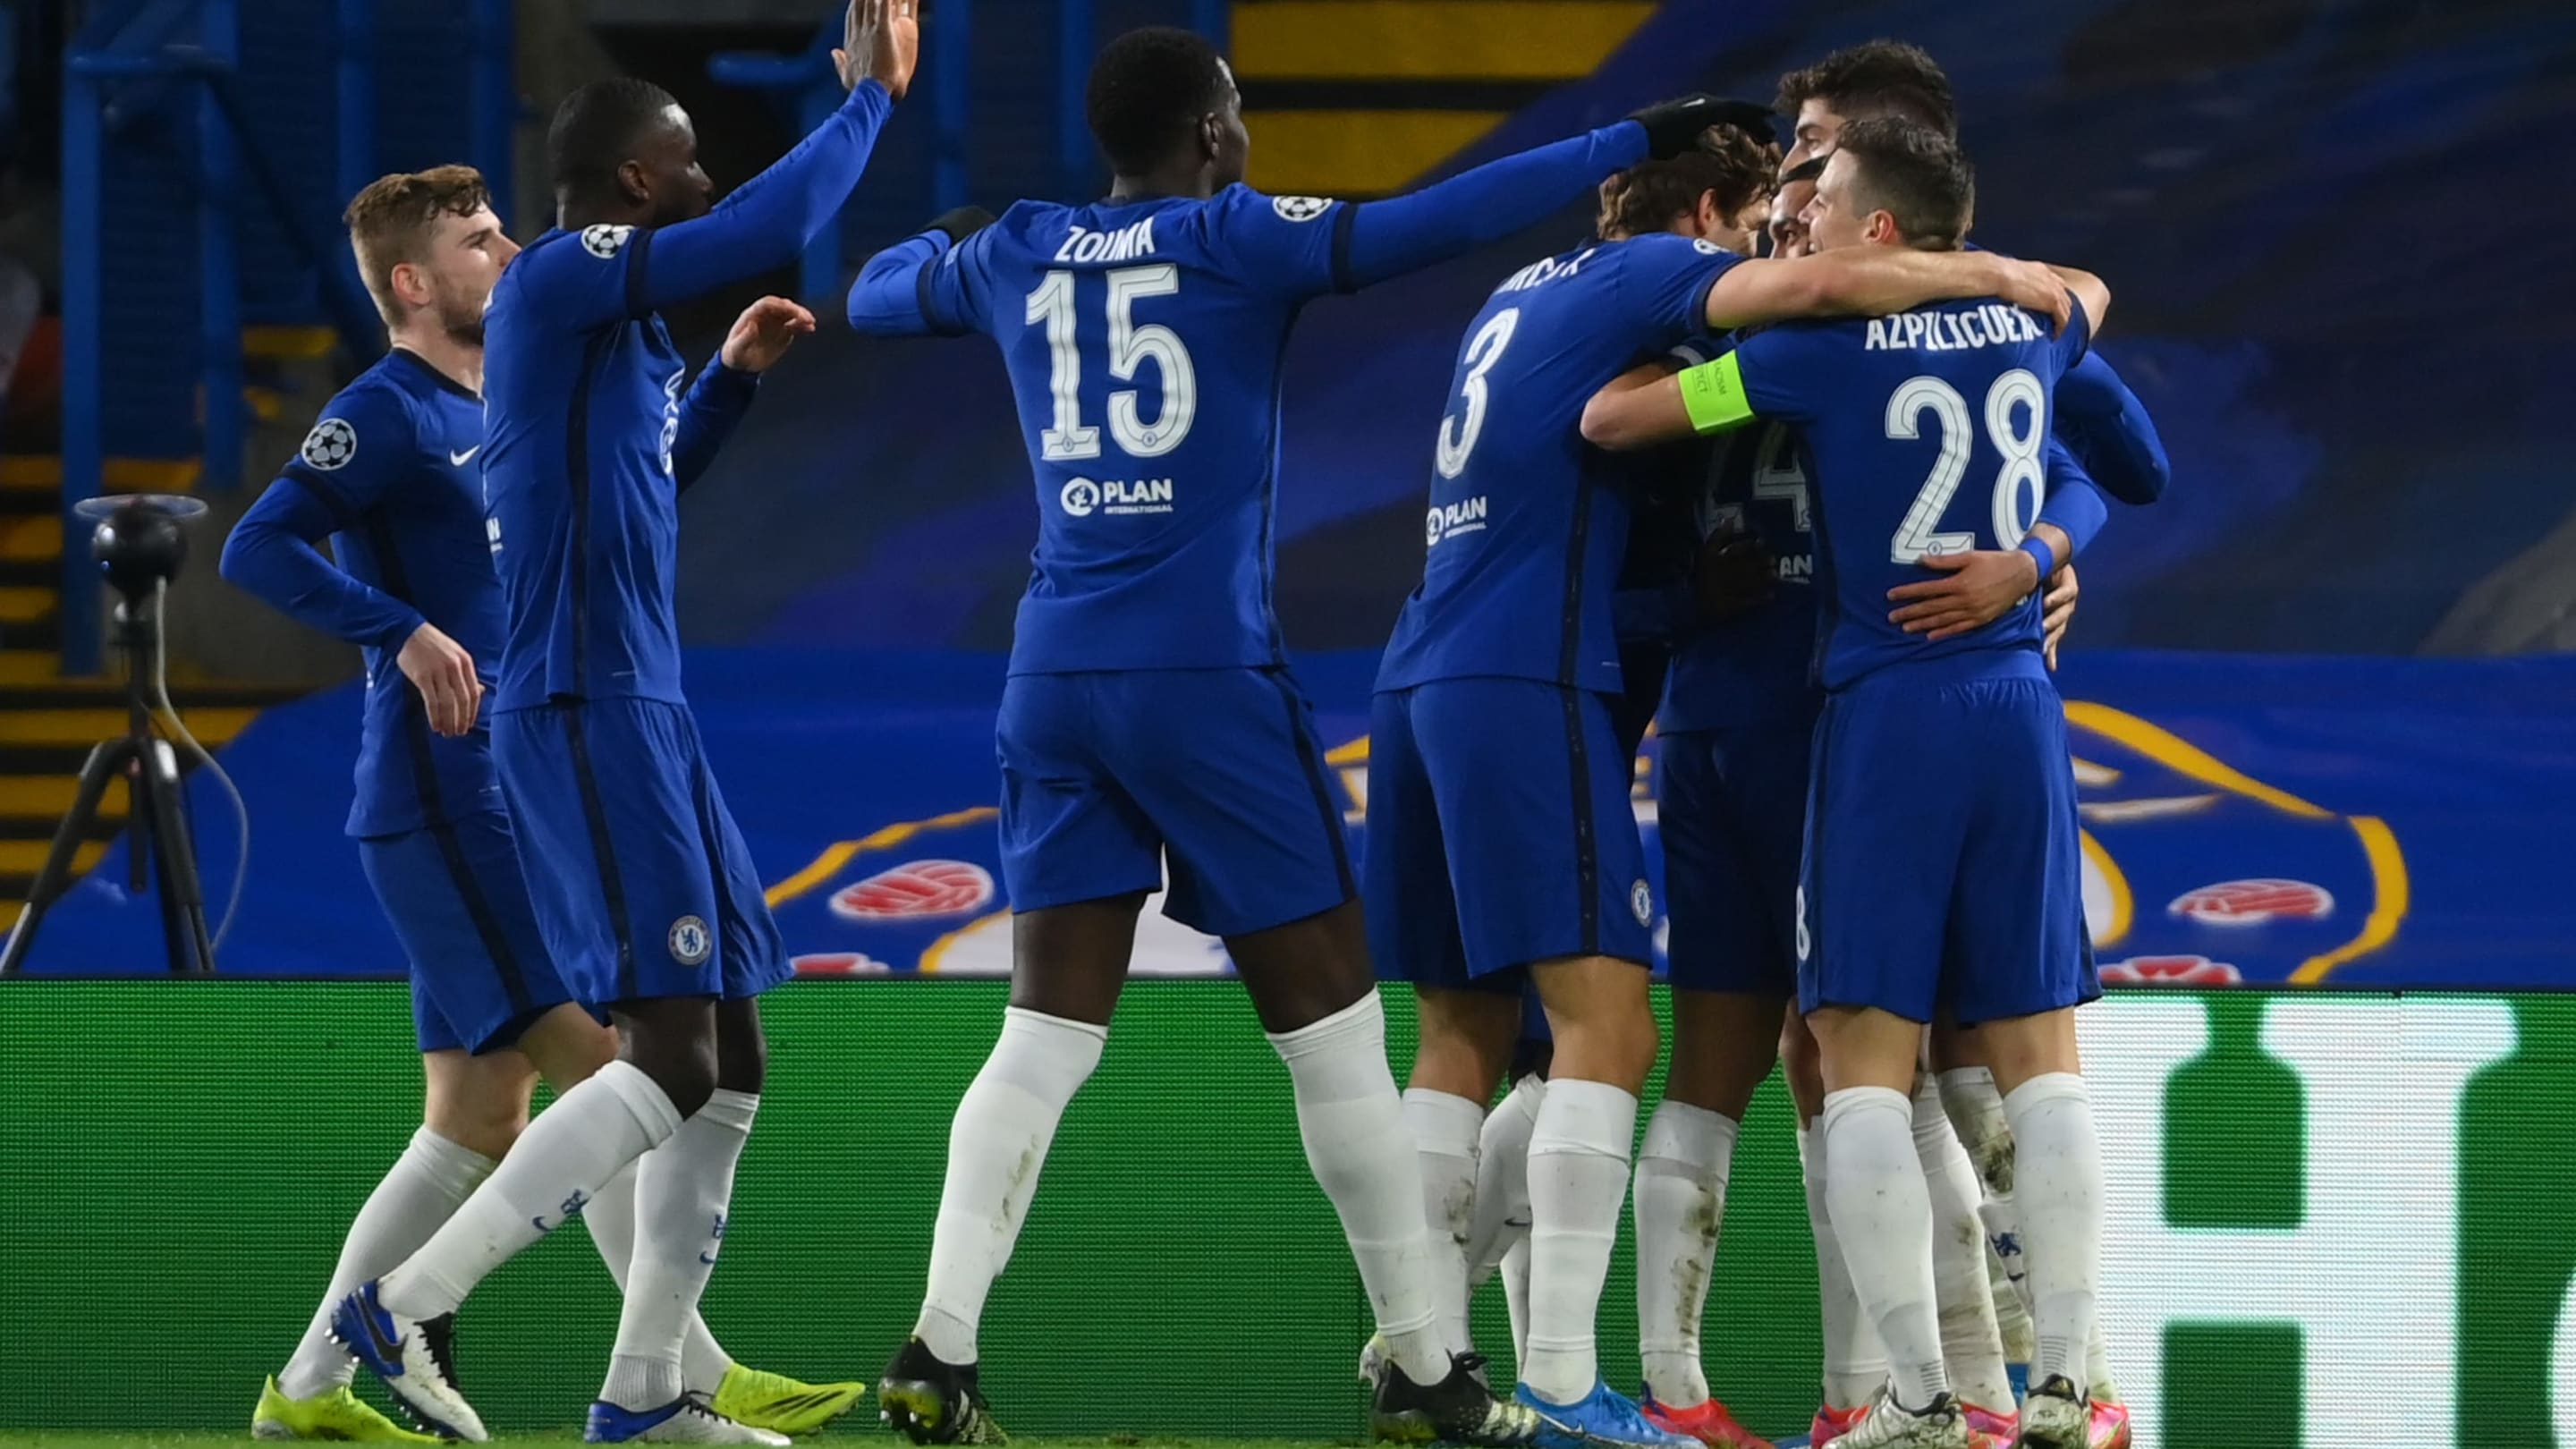 Chelsea 2-0 Atletico Madrid: Player ratings as Ziyech & Emerson dump Atleti out thumbnail